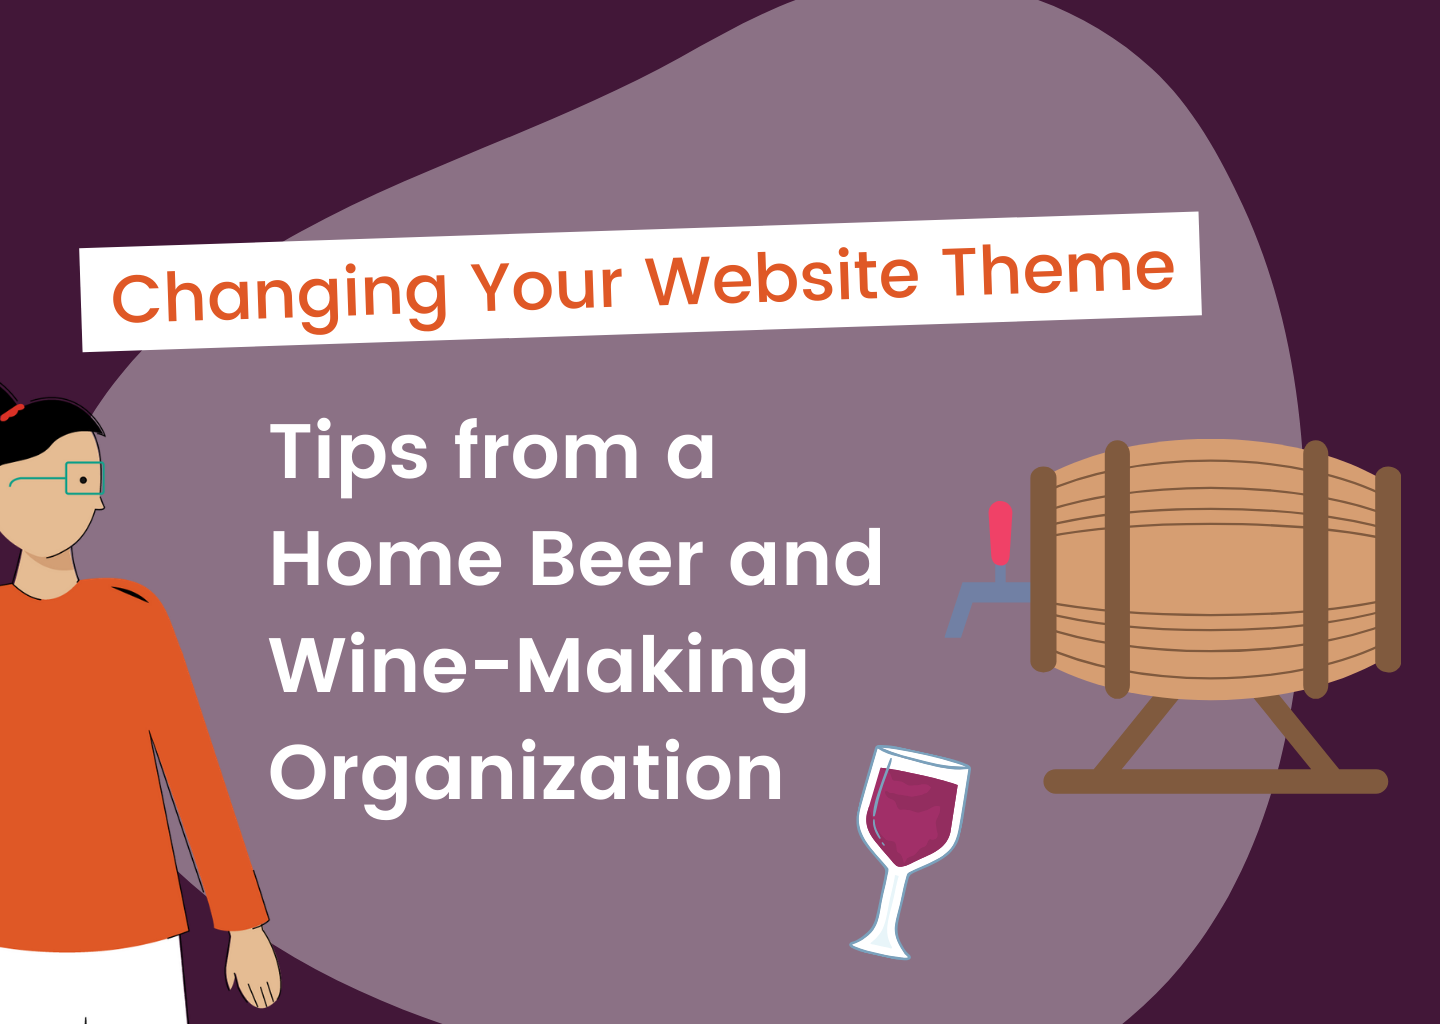 Changing Your Website Theme Tips from a Home Beer and Wine-Making Group   to Engage Your Members